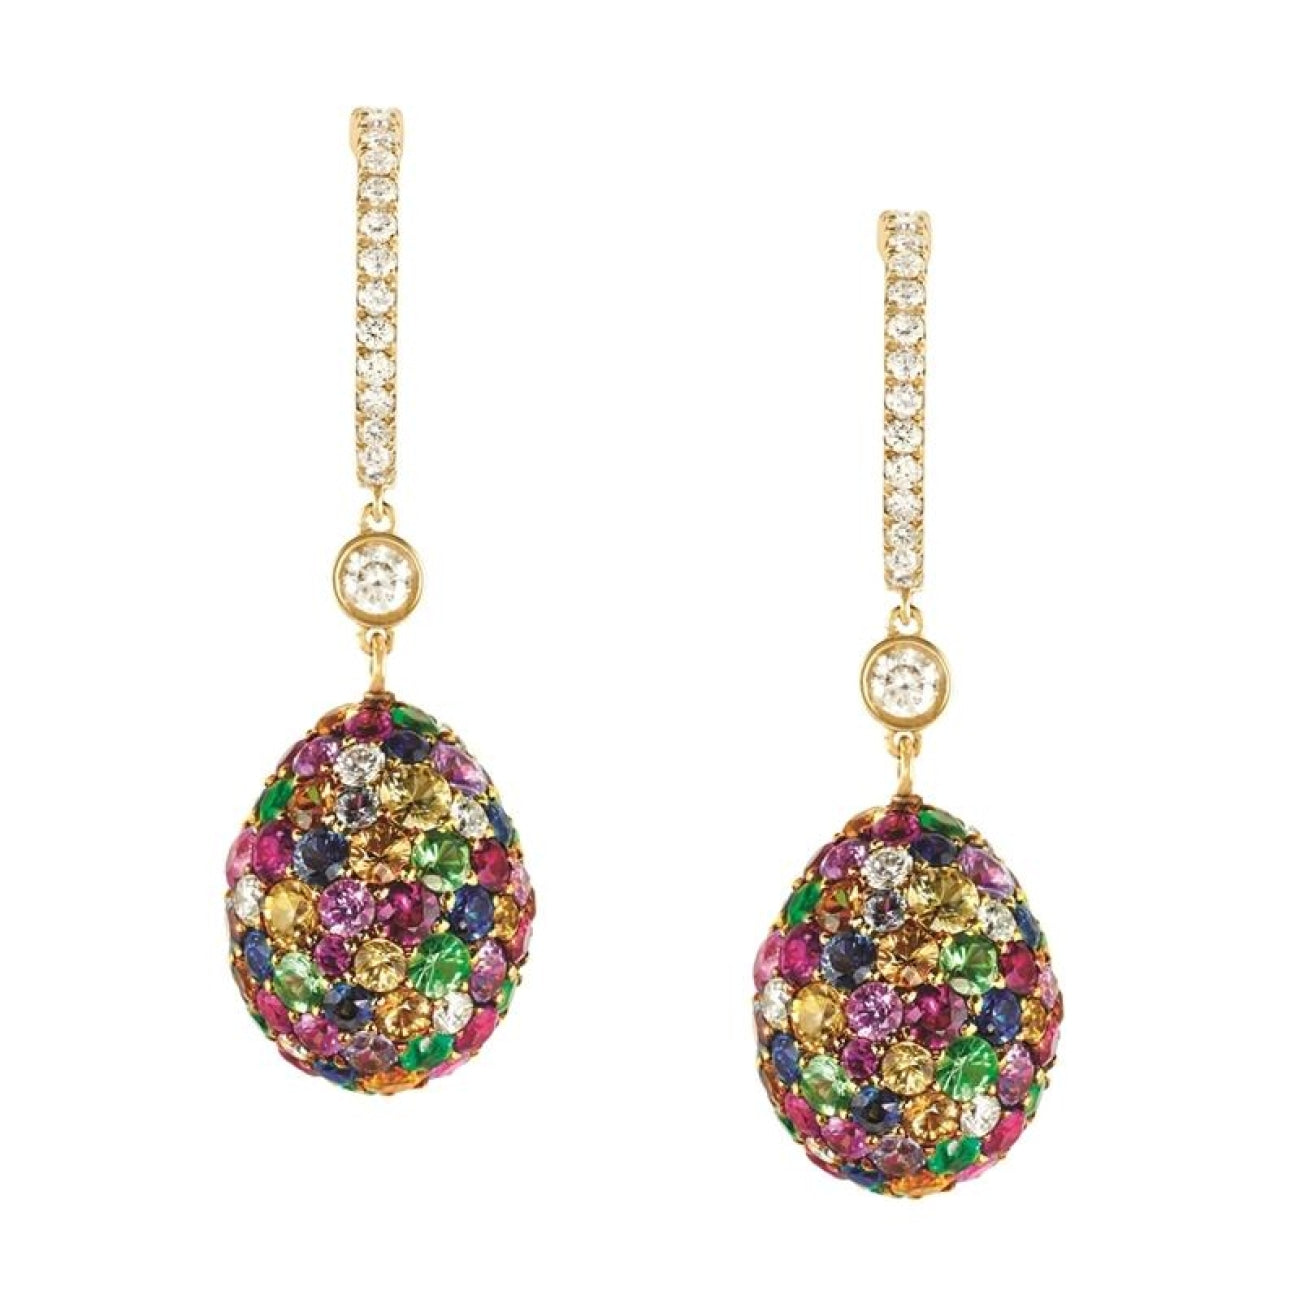 Fabergé Jewelry - EMOTION MULTI-COLOURED EARRINGS | Manfredi Jewels